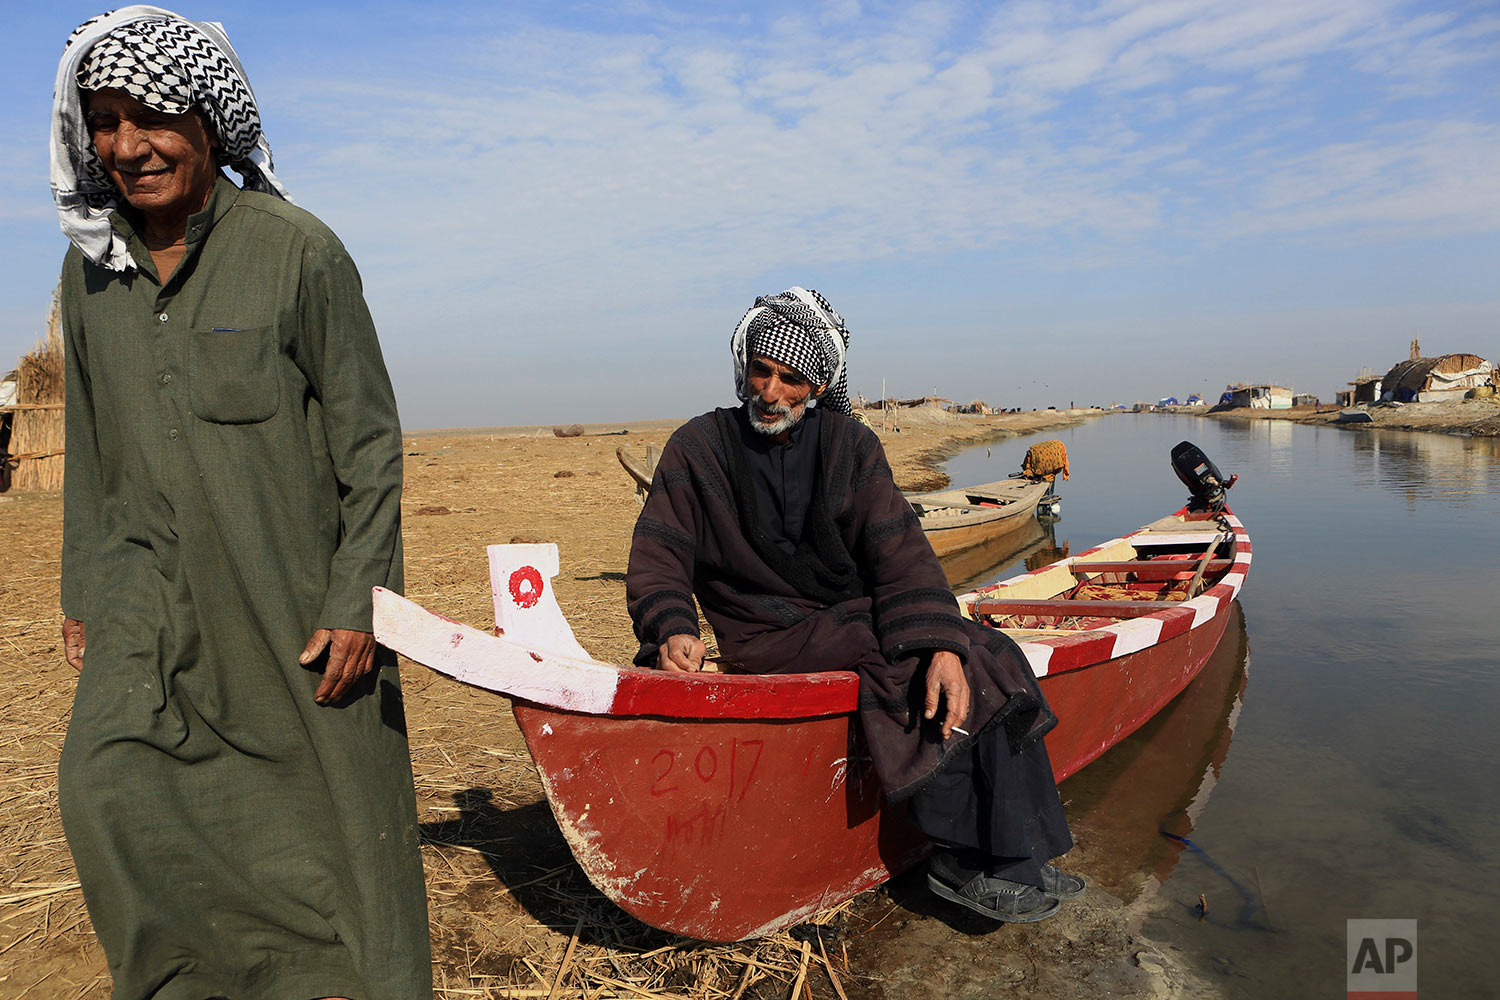 Boats owners are seen in the Chabaish marsh, in the Maysan province of southern Iraq, Saturday, Jan. 7, 2017. (AP Photo/Nabil al-Jurani)